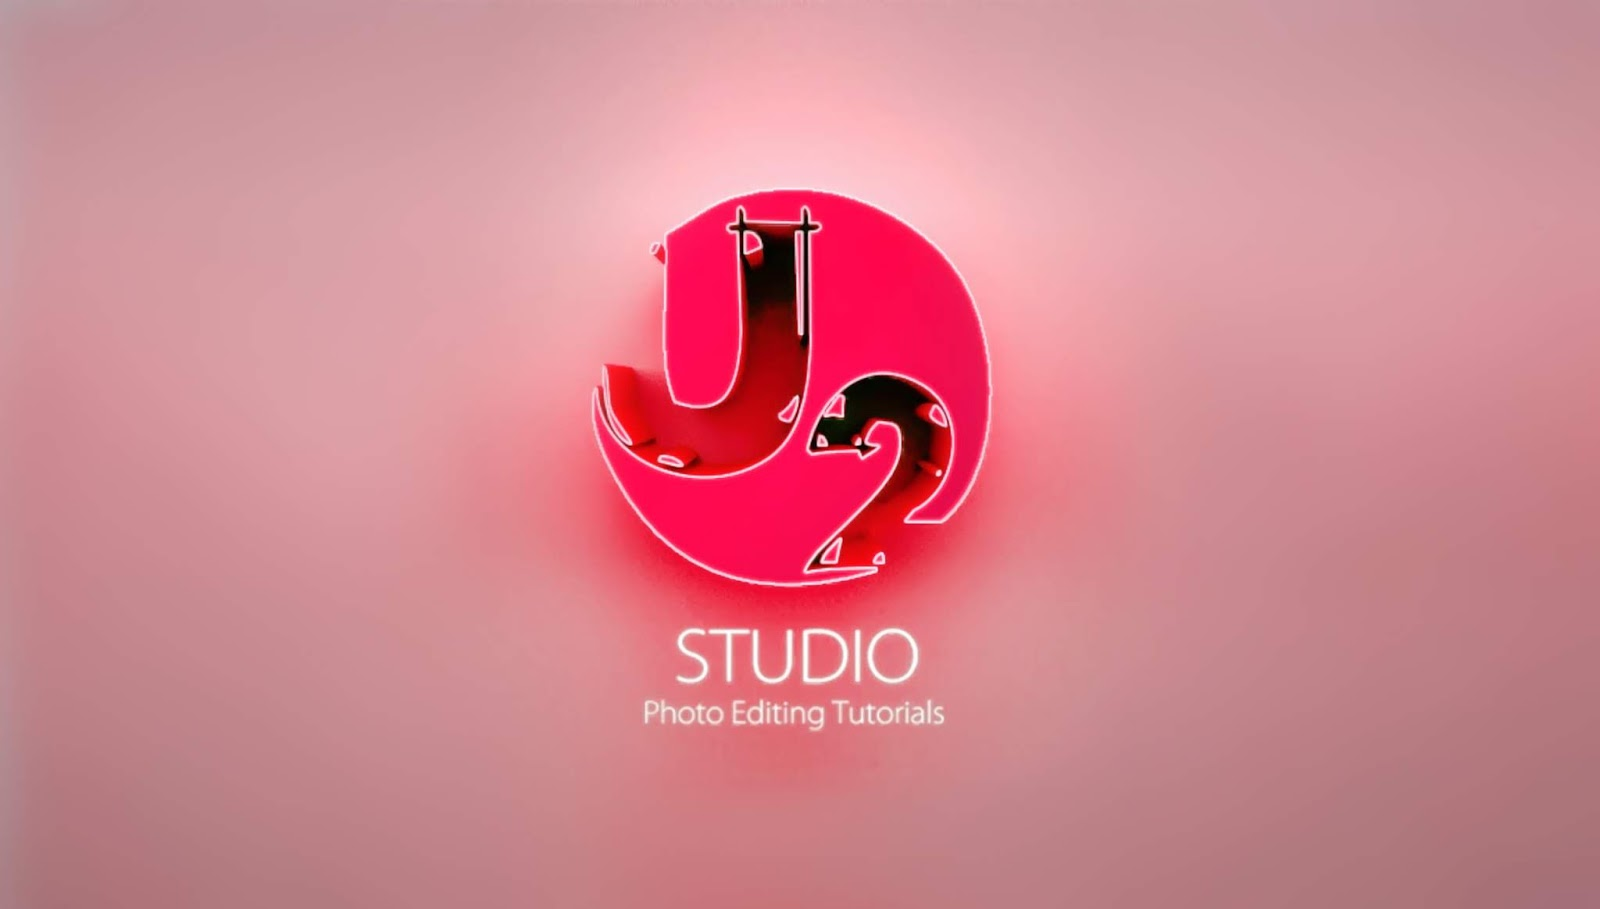 Cc Tutorial U2 Studio How To Make 3d Logo Photoshop Cc Tutorial By U2 Studio